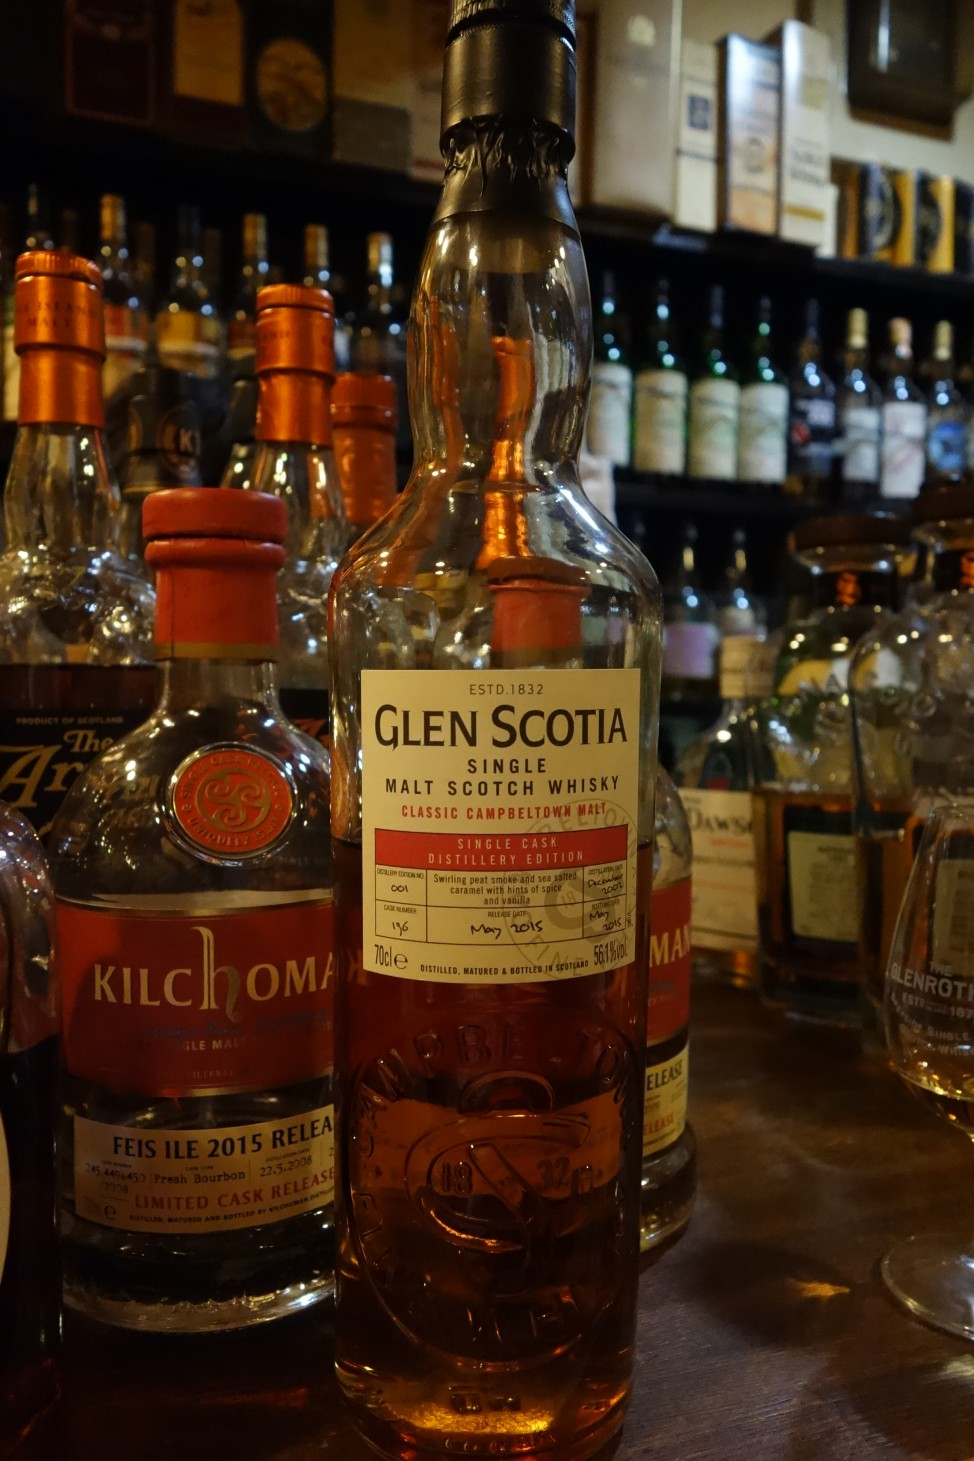 GLENSCOTIA 2002-2015 12yo OB #196 DISTILLERY EDITION No.001